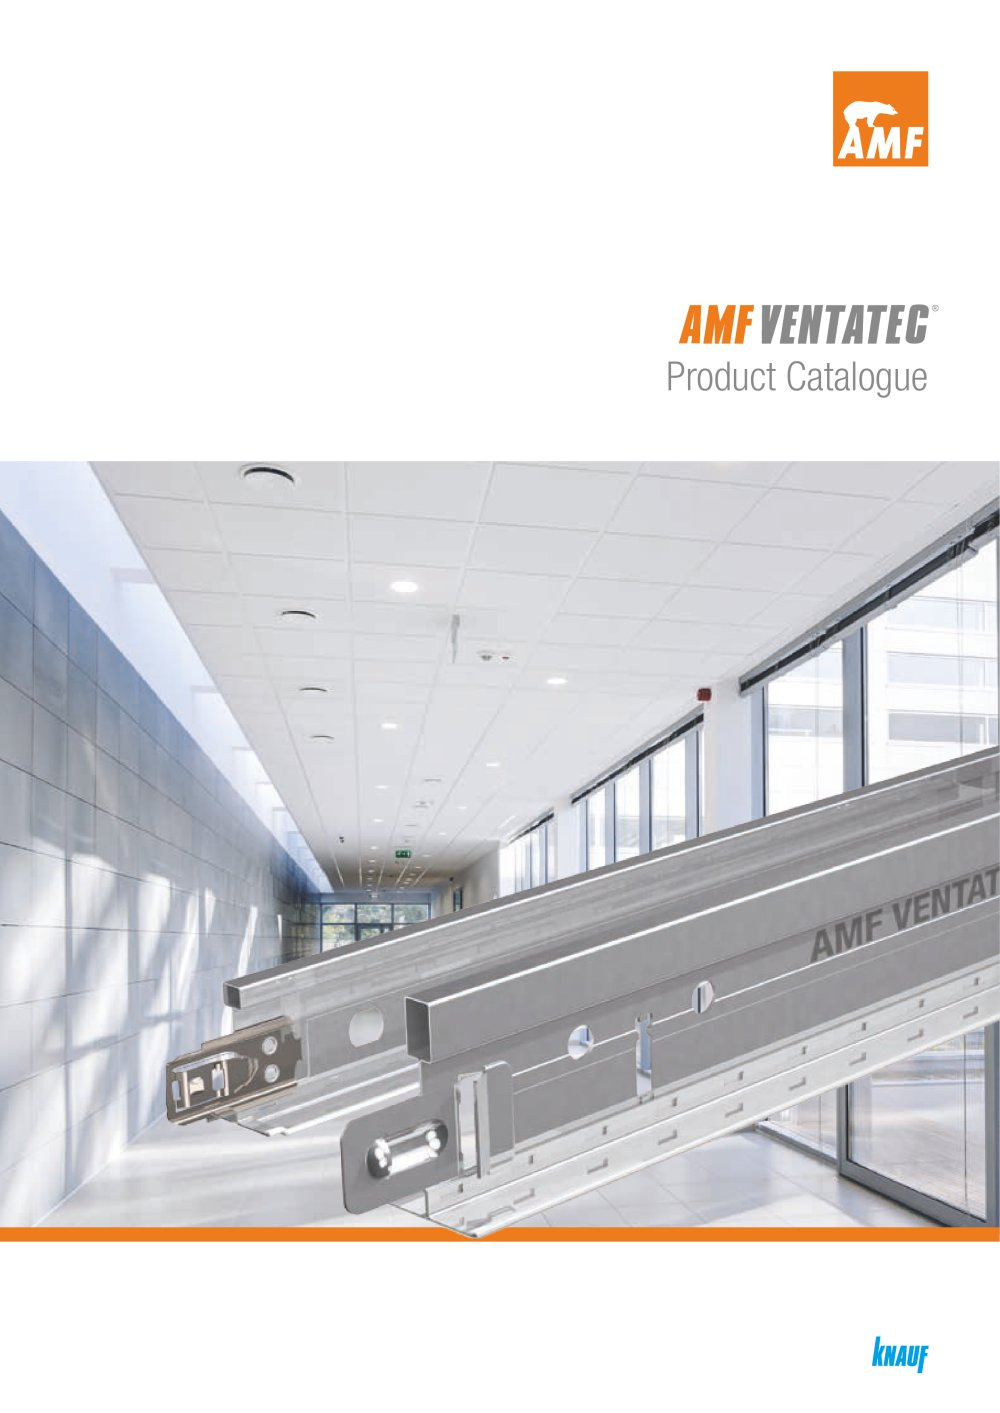 Amf ventatec product catalogue knauf amf pdf catalogues amf ventatec product catalogue 1 20 pages dailygadgetfo Choice Image